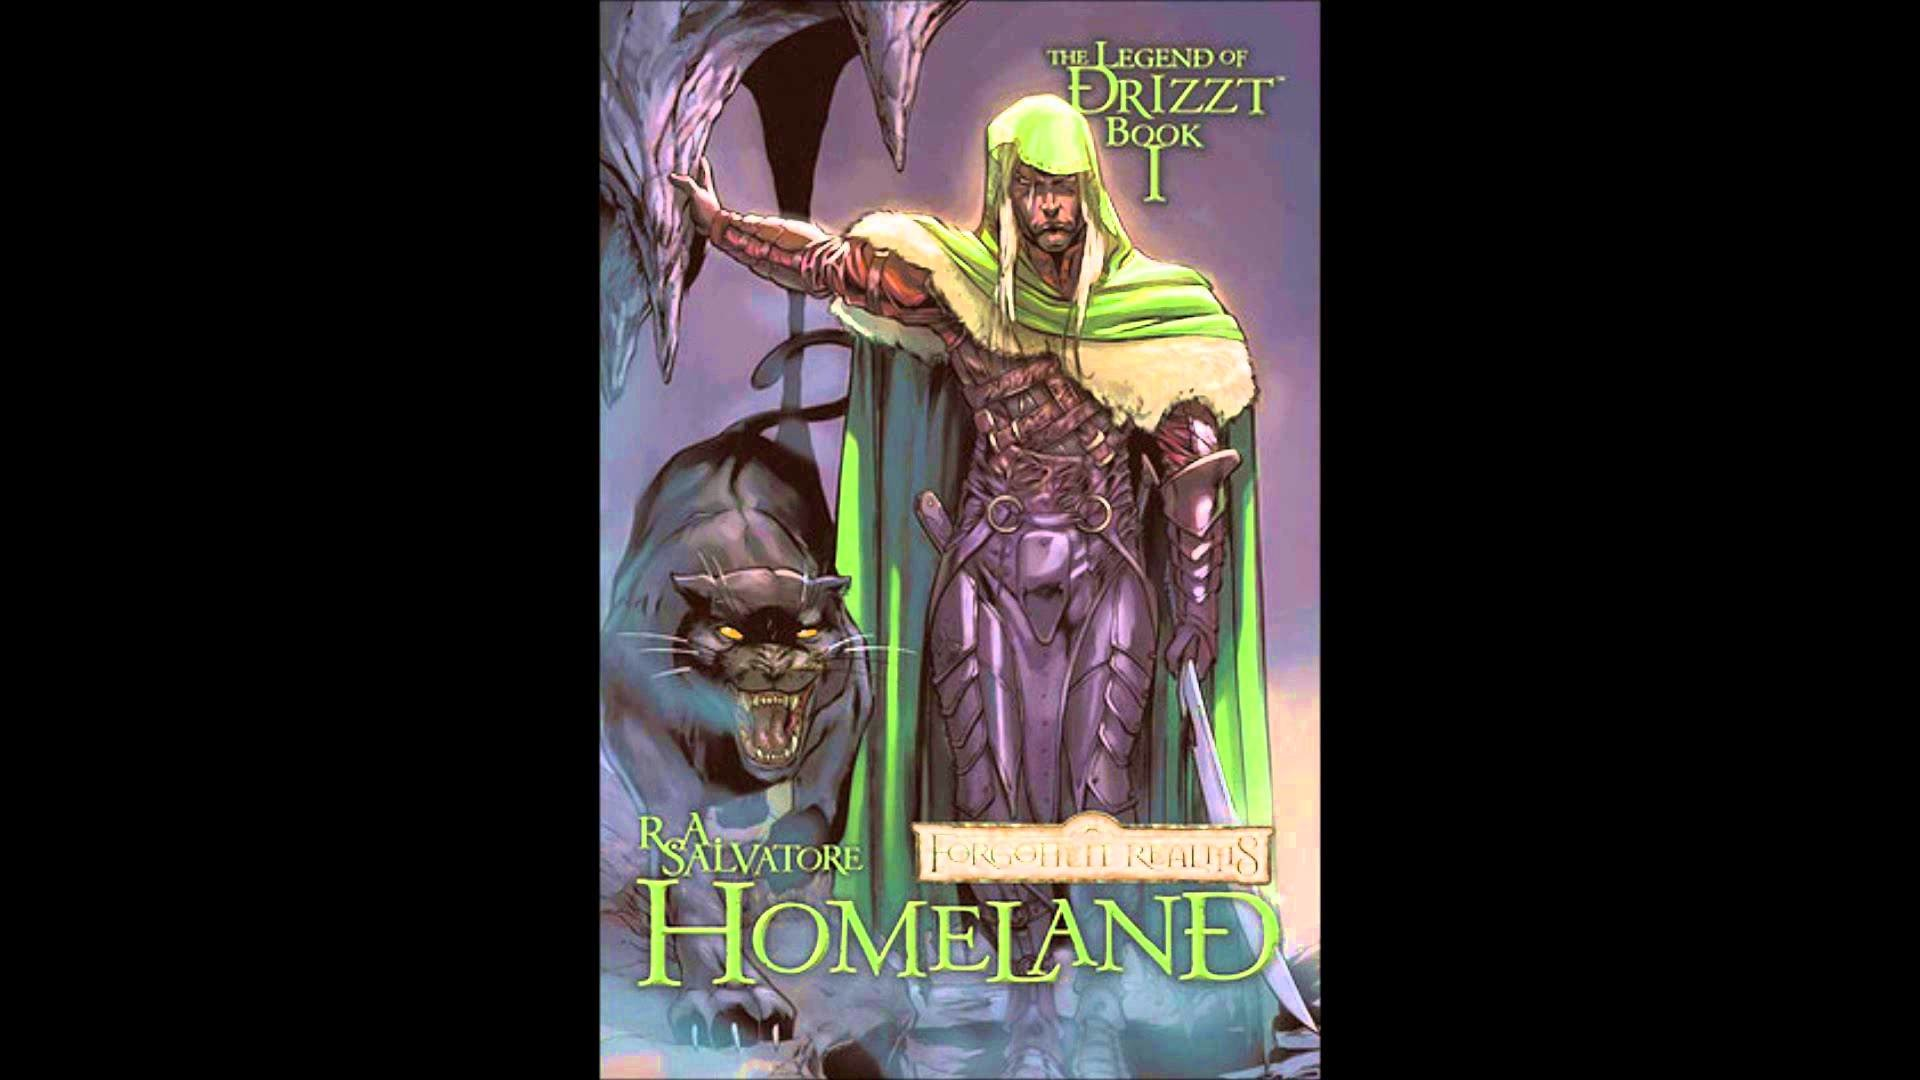 1920x1080 The Legend of Drizzt: Homeland Graphic Novel Review